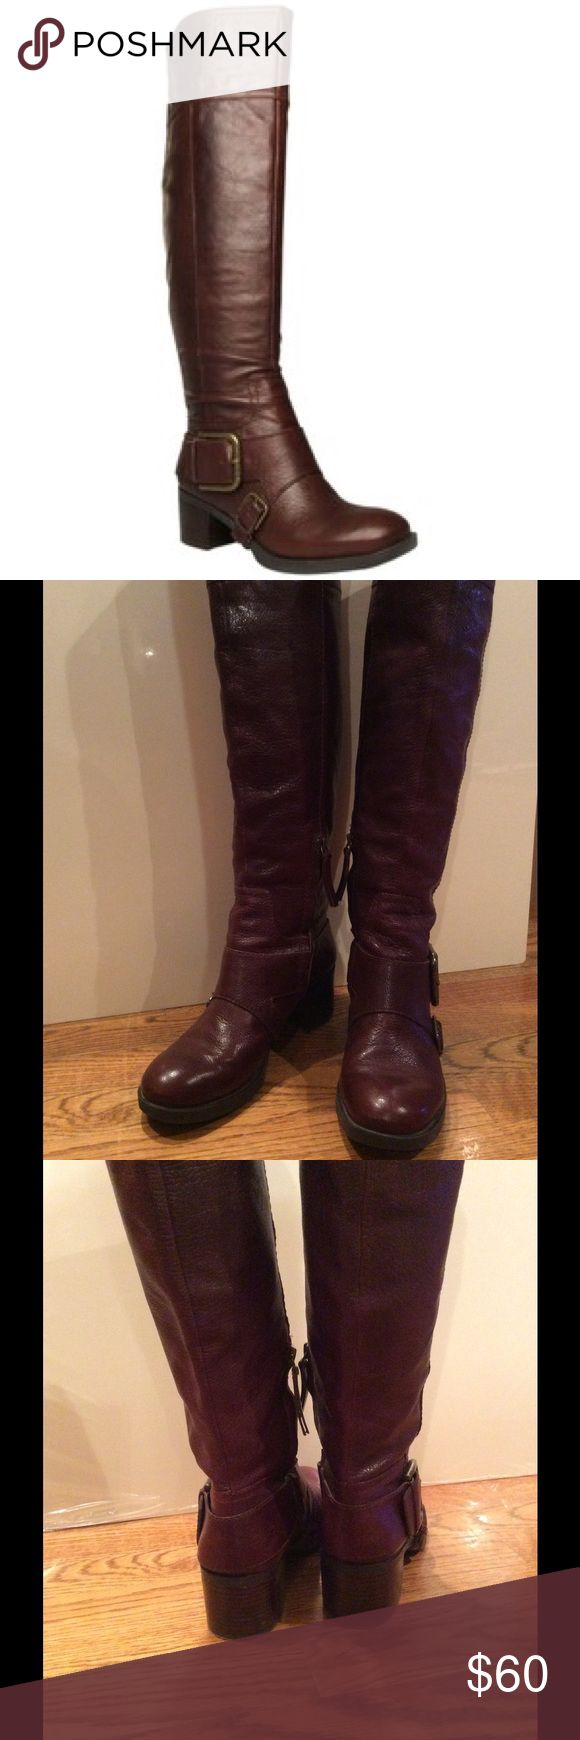 "Nine West ""Clara"" brown leather knee high boots Almost like new .Only wore once so they have some scuffs on the heels. Nine West ""Clara"" brown leather boots sz 7, 2"" heel, 17 1/2"" shaft. Partial side zippers. Runs a little big. I usually wear 7.5 but these fit me perfectly even with socks. Nine West Shoes Over the Knee Boots"